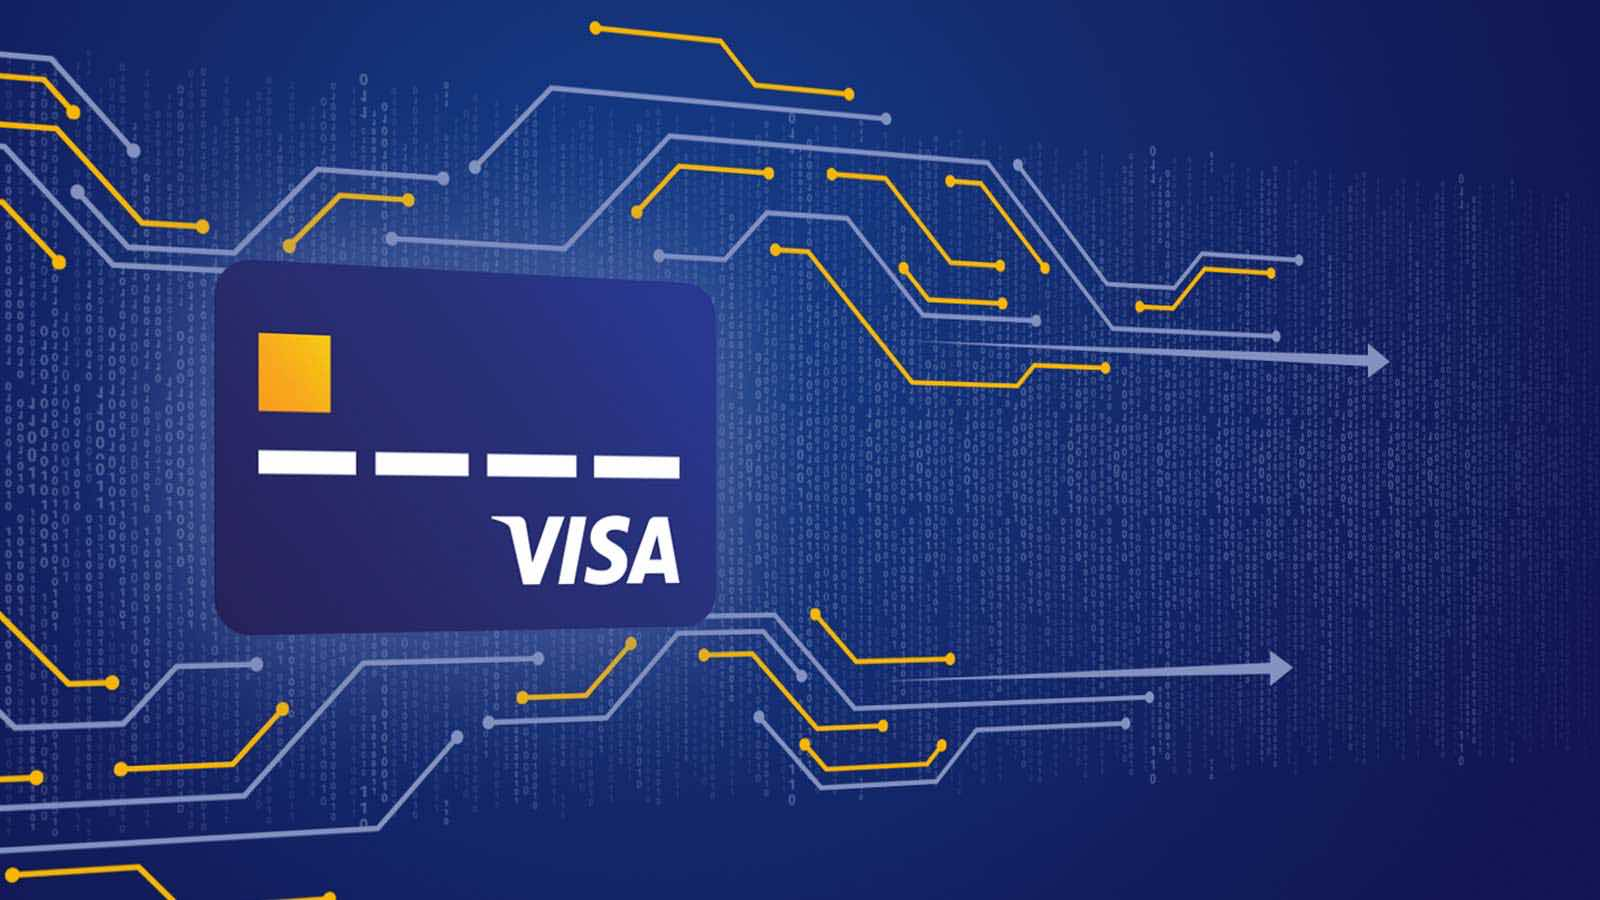 Visa card against blue background.